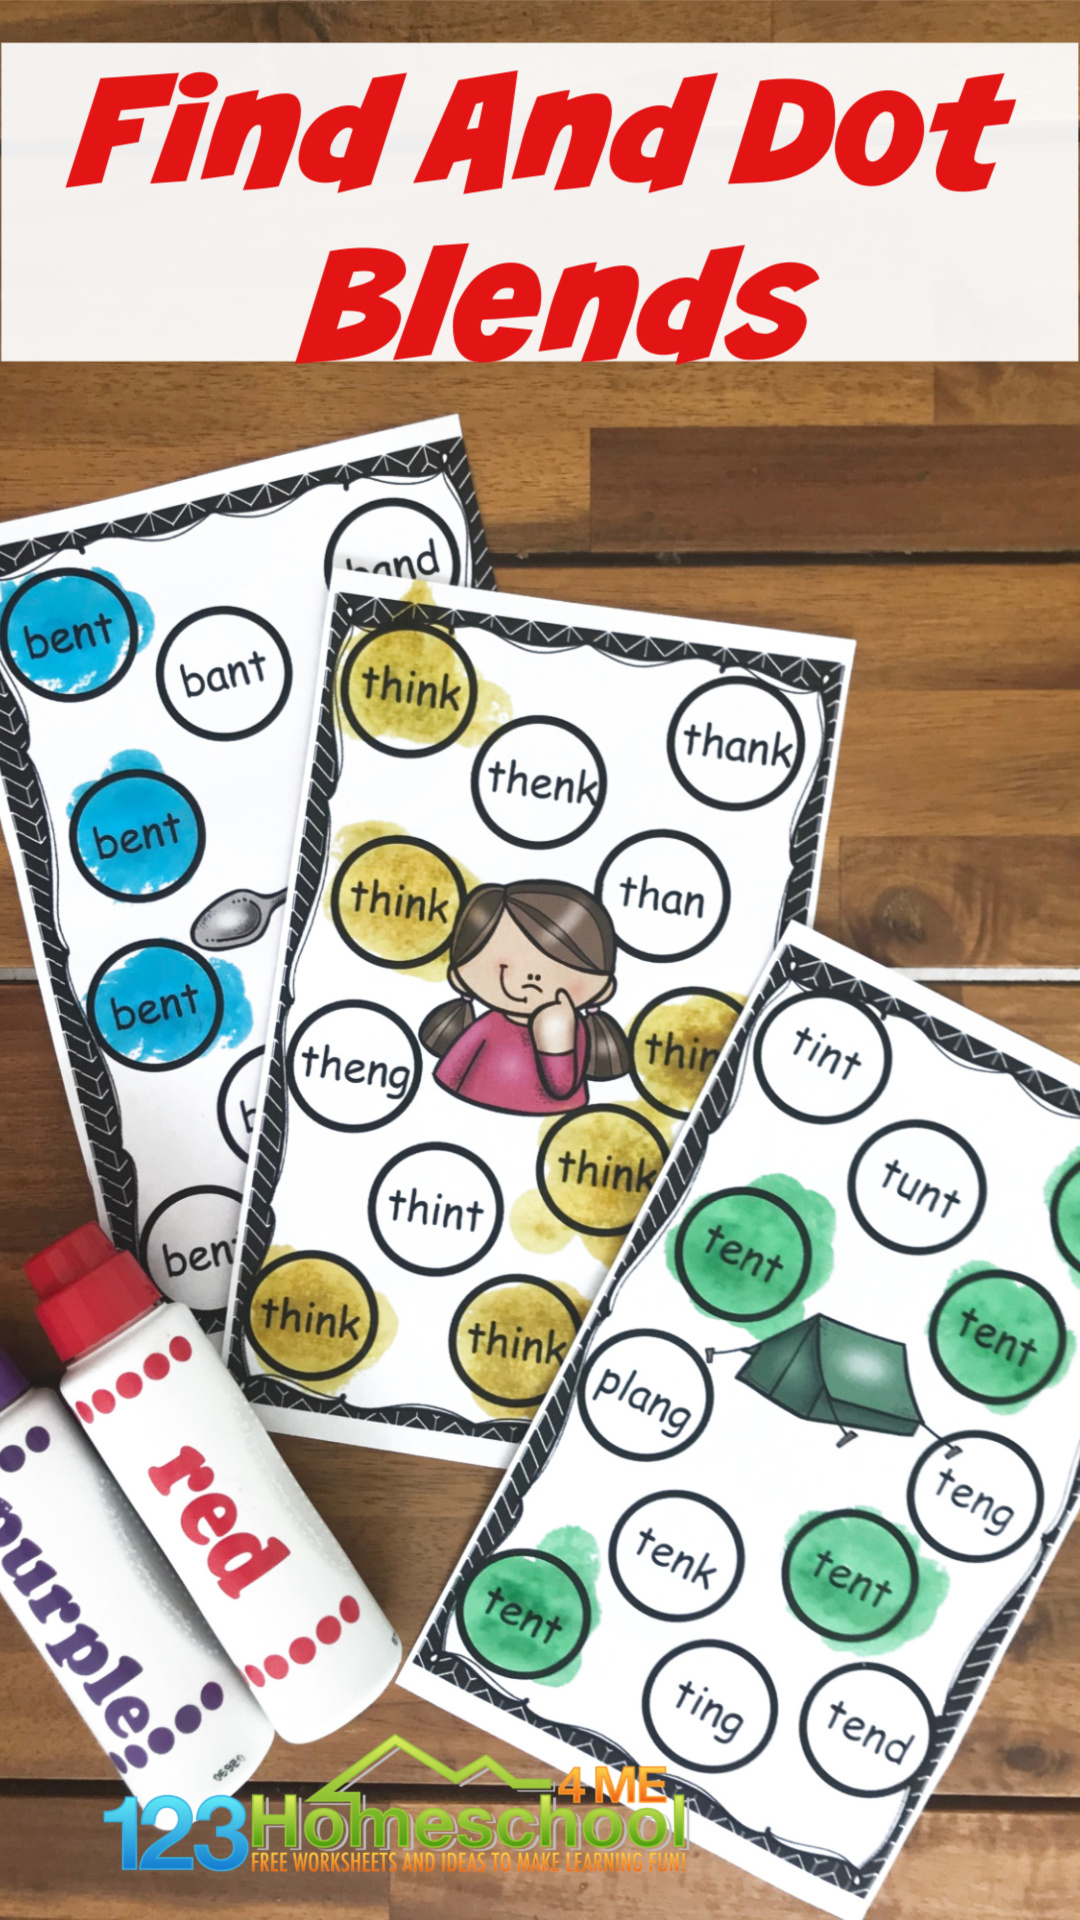 Kids will have fun working onending blends with this super cute, fun, and free printable find and dot blend activity for first grade students. We just using bingo daubers and do a dot printable to practice a variety of literacy activities like this Ending Blend Activities.